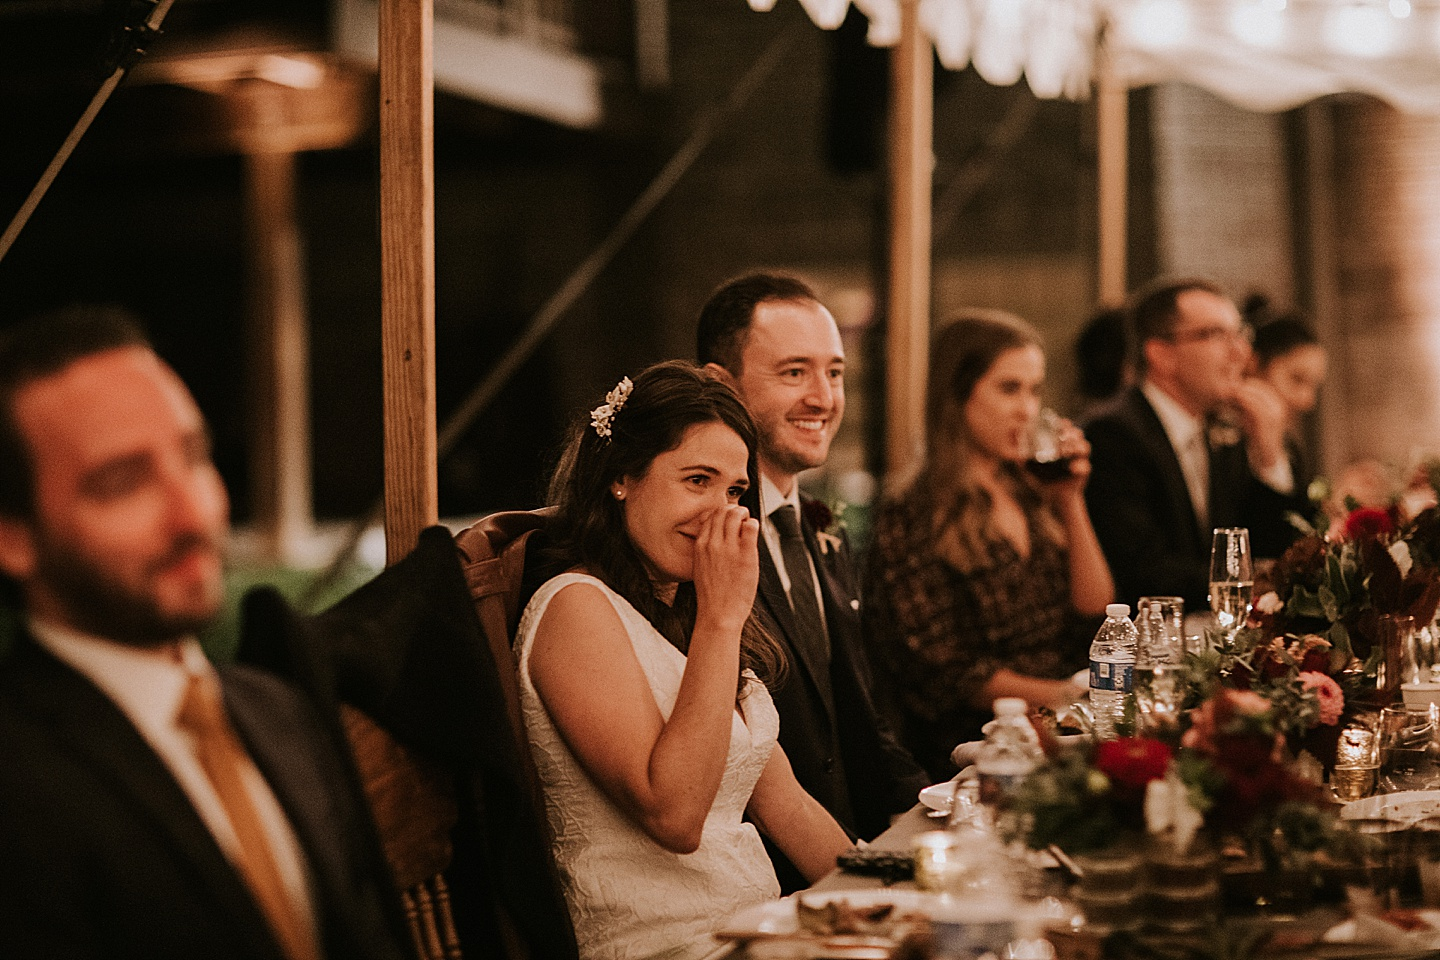 Couple laughing at wedding toast